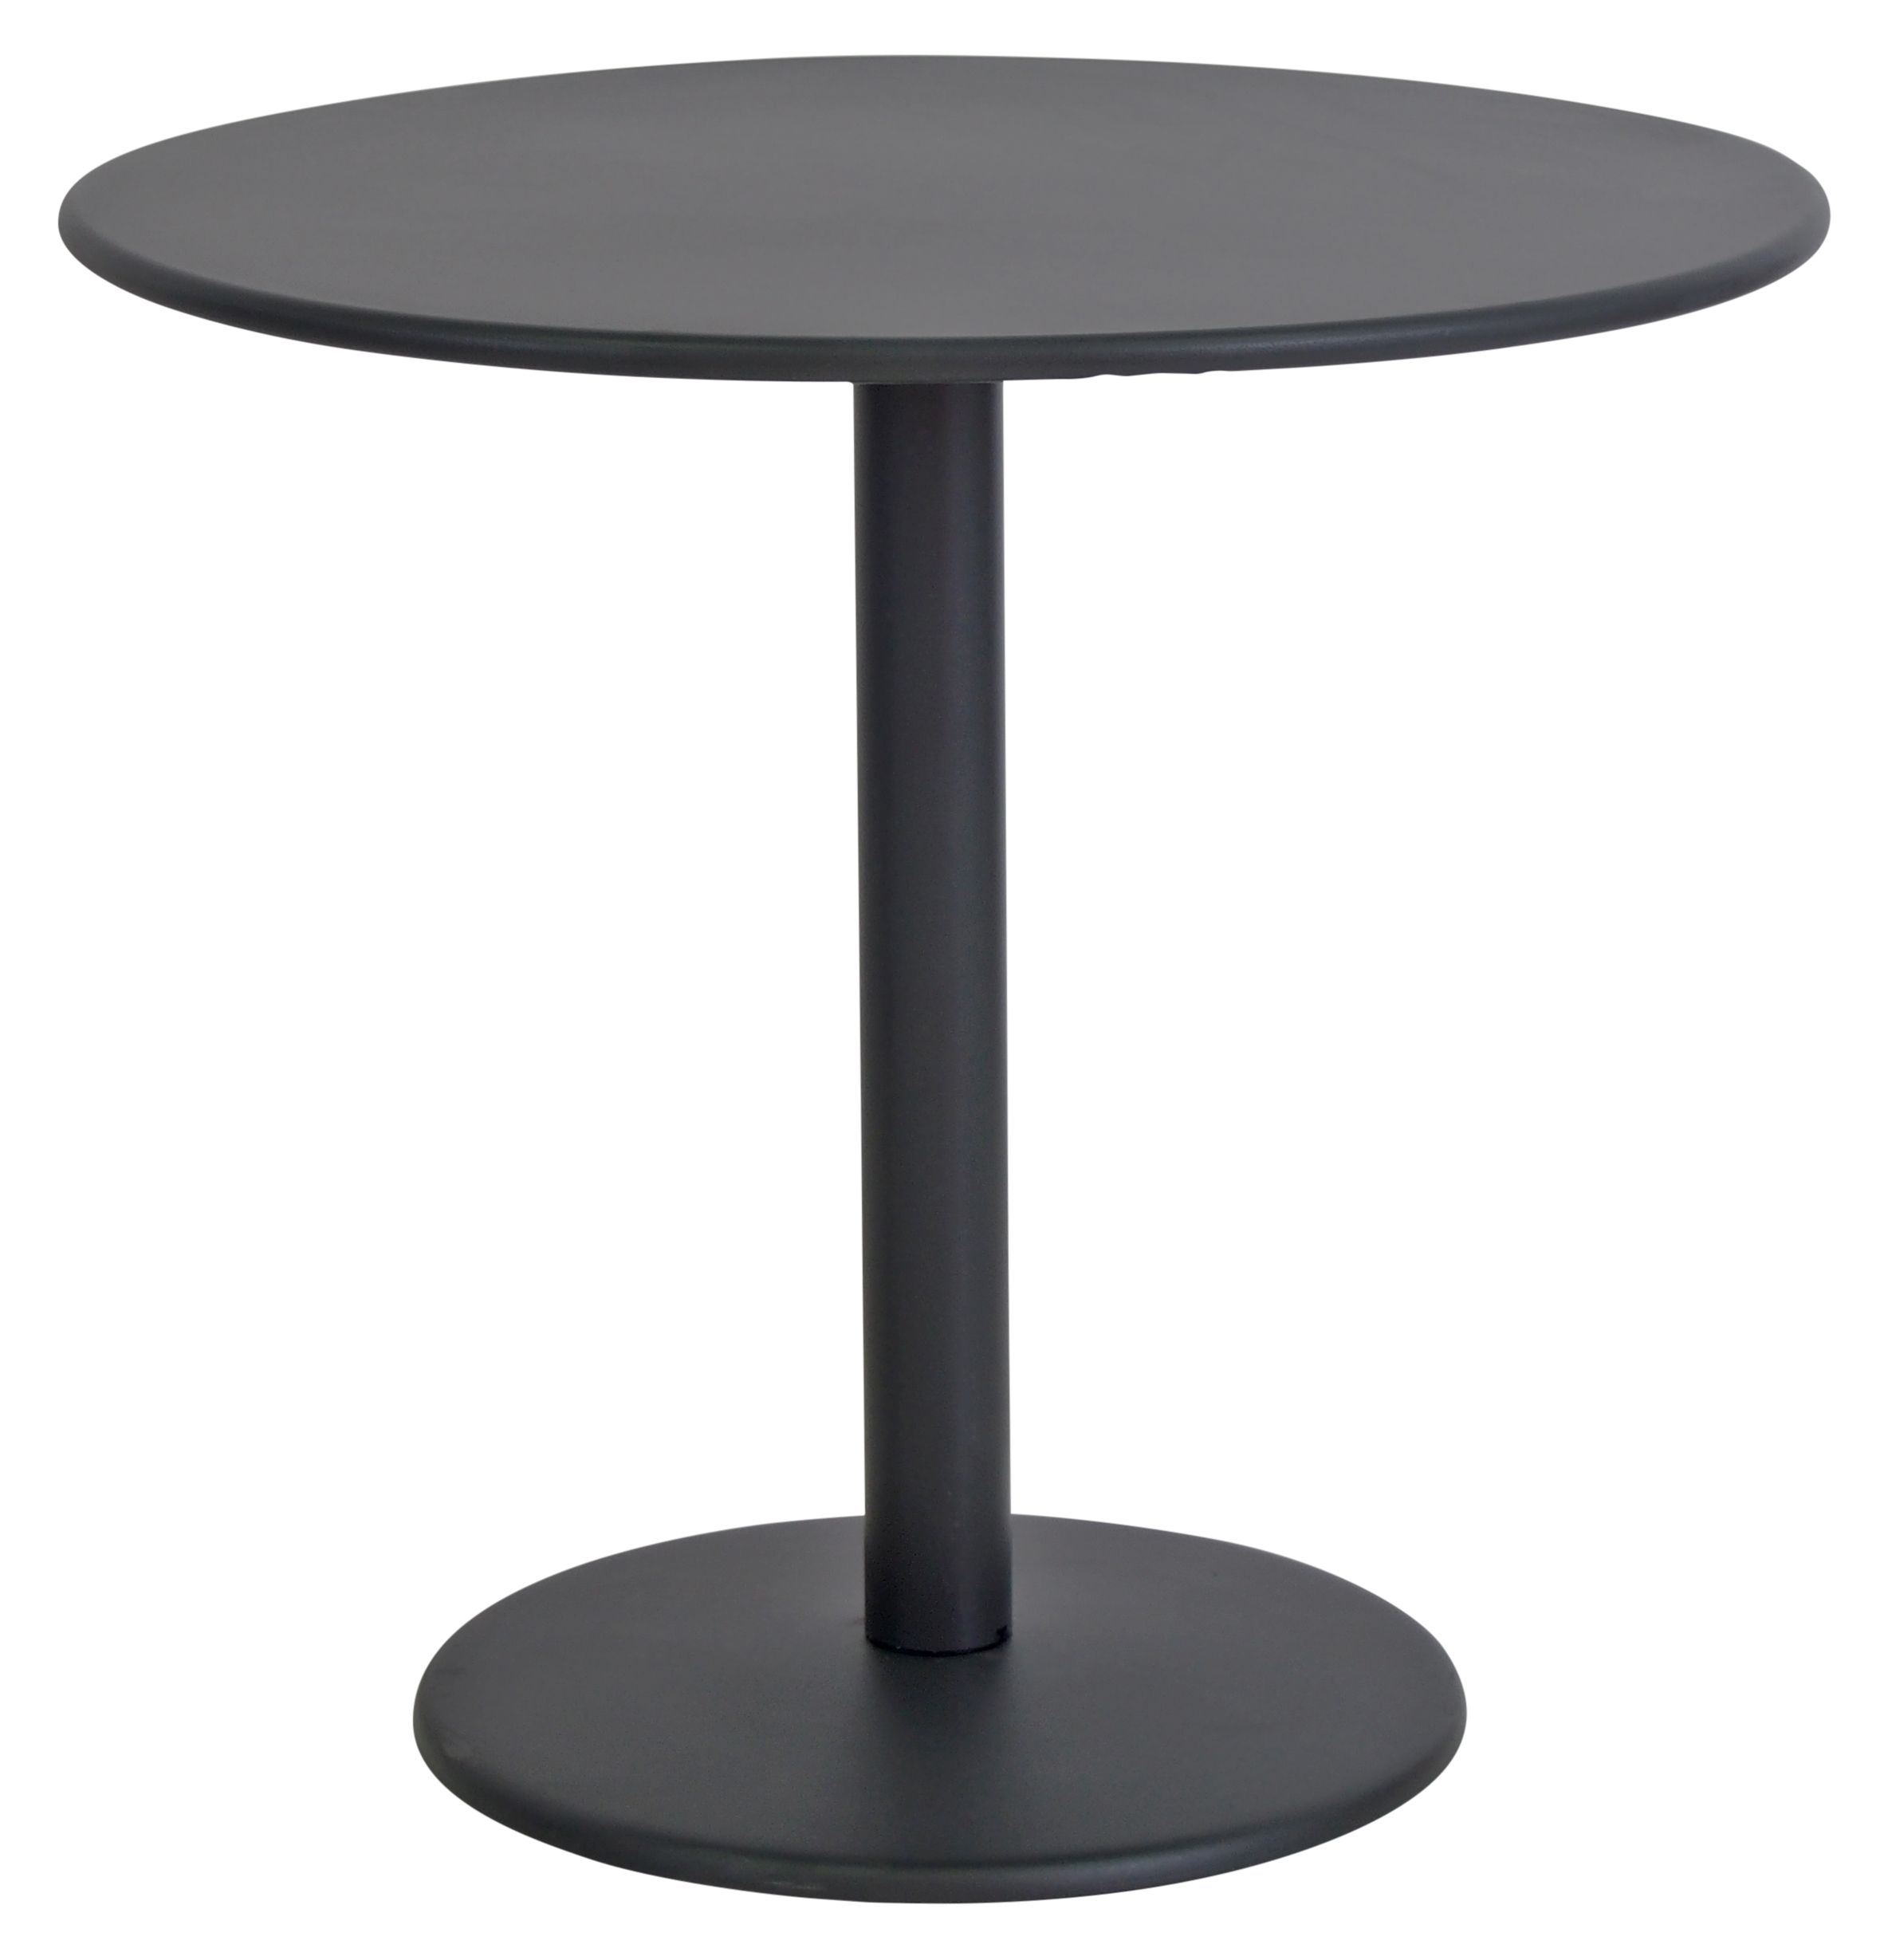 emuamericas, llc 902-22 table, outdoor